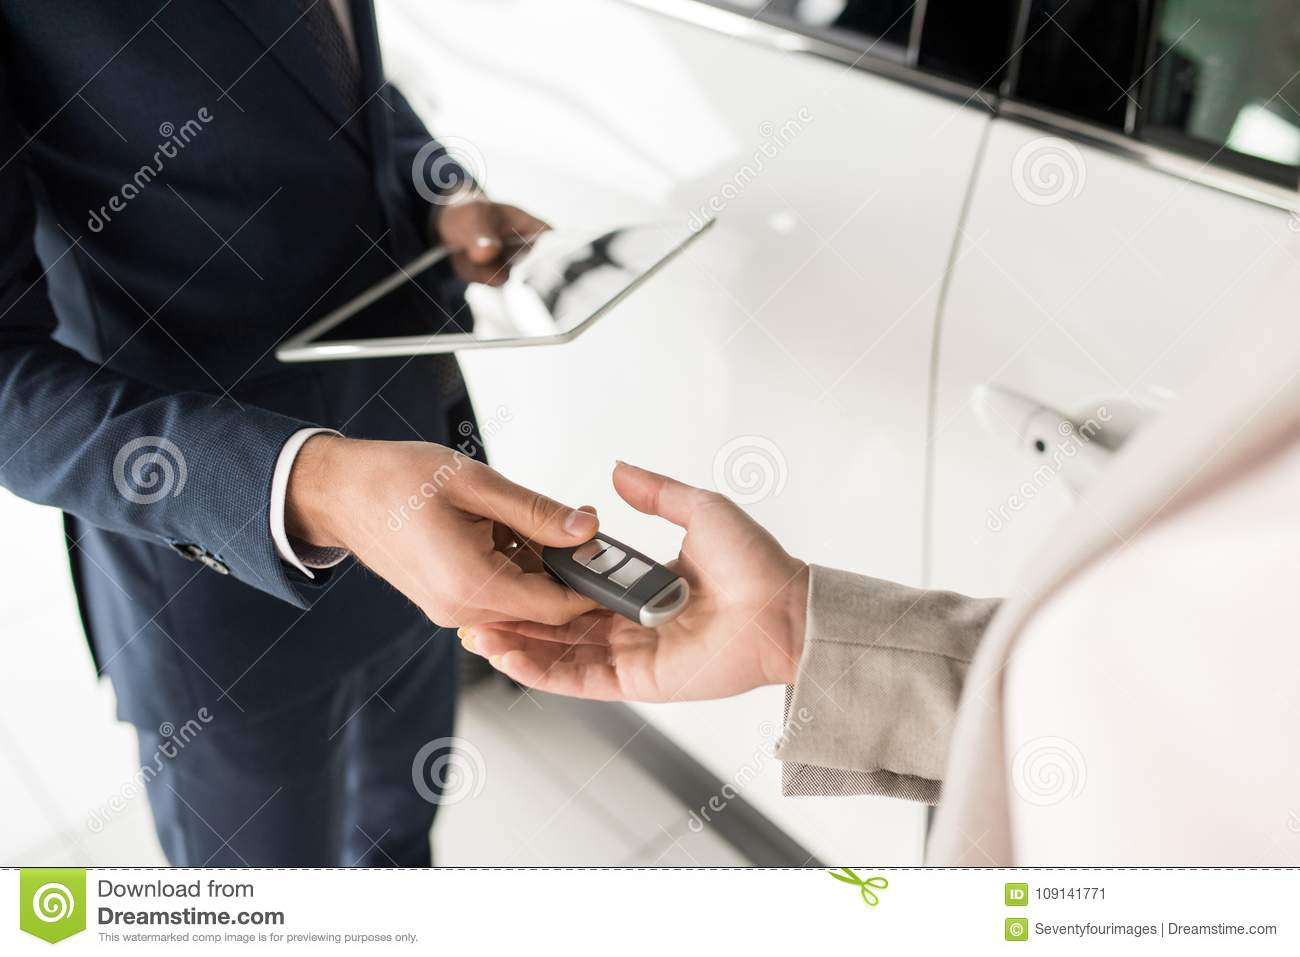 2 267 Luxury Car Keys Photos Free Royalty Free Stock Photos From Dreamstime